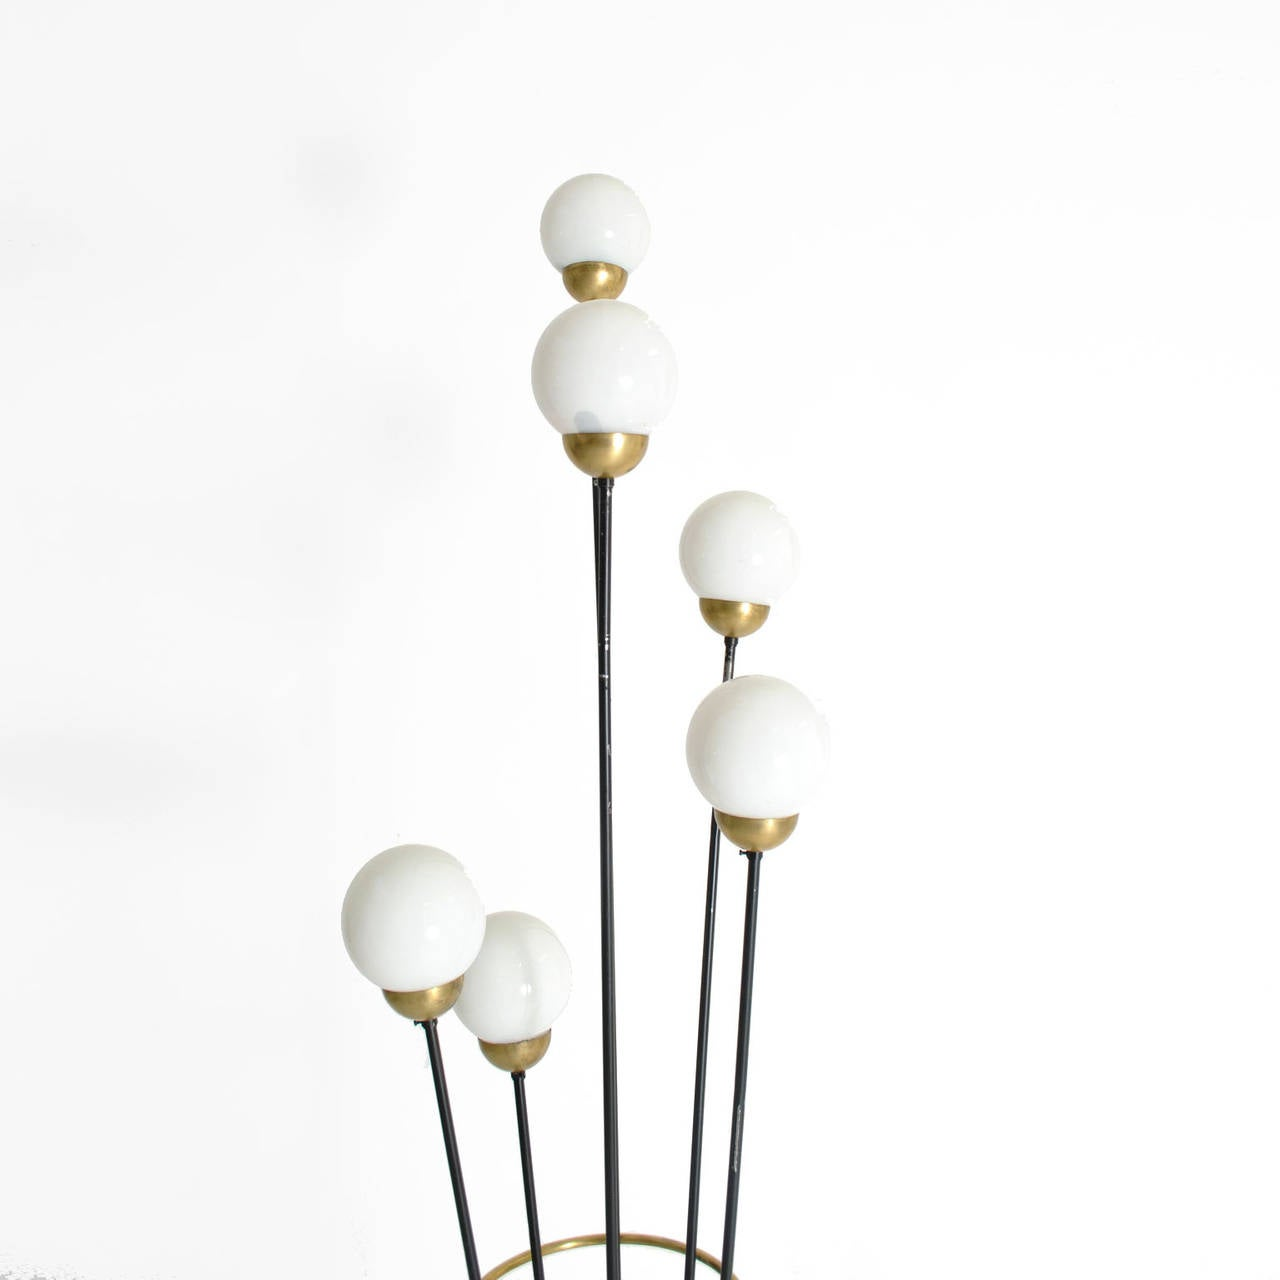 Floor lamp designed by stilnovo italy 1950 at 1stdibs for 1950 floor lamp